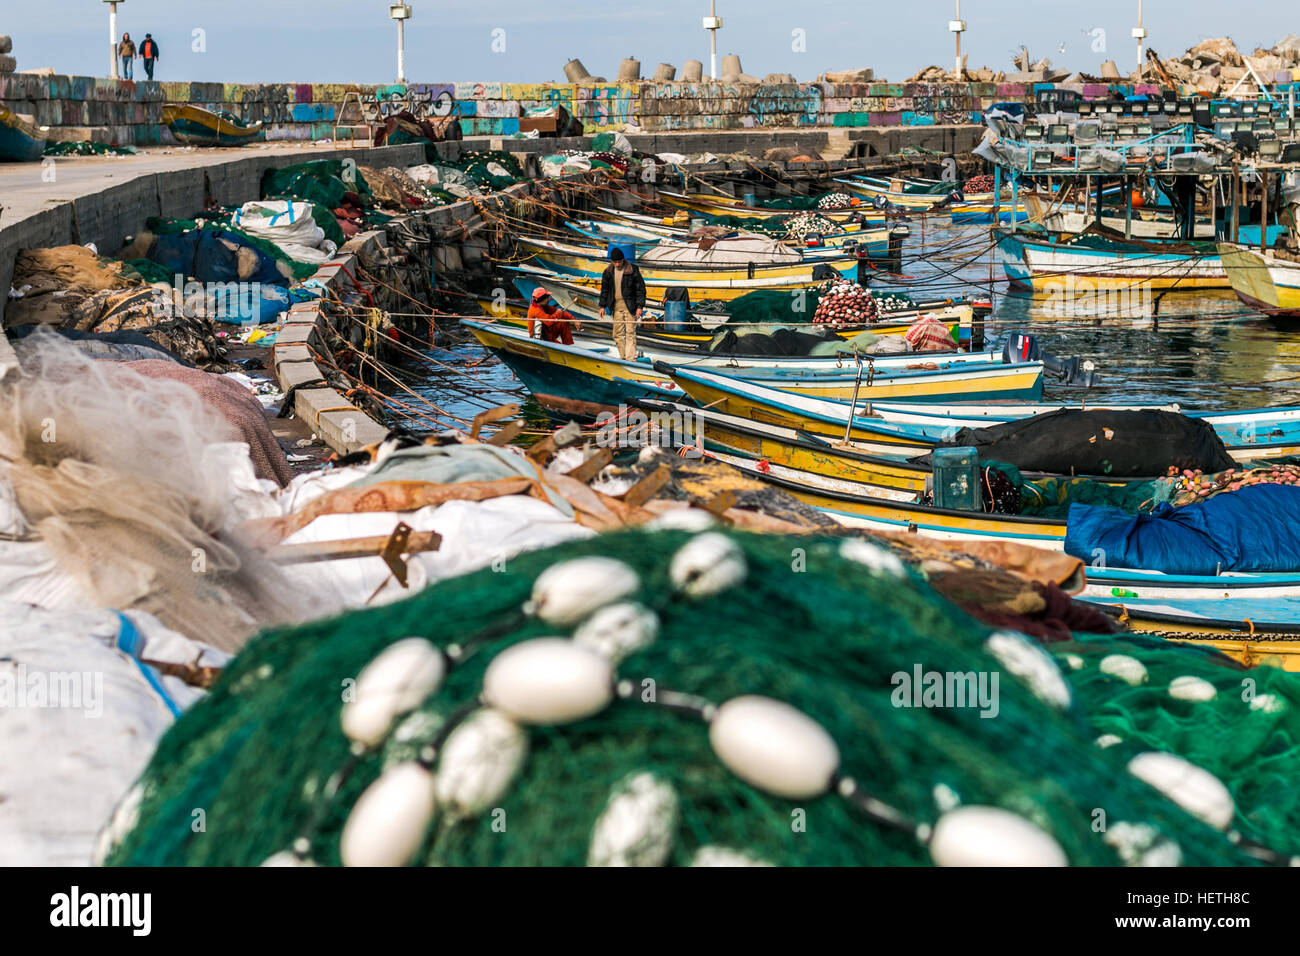 Gaza City Harbor Seaport boats Fishing Nets - Stock Image